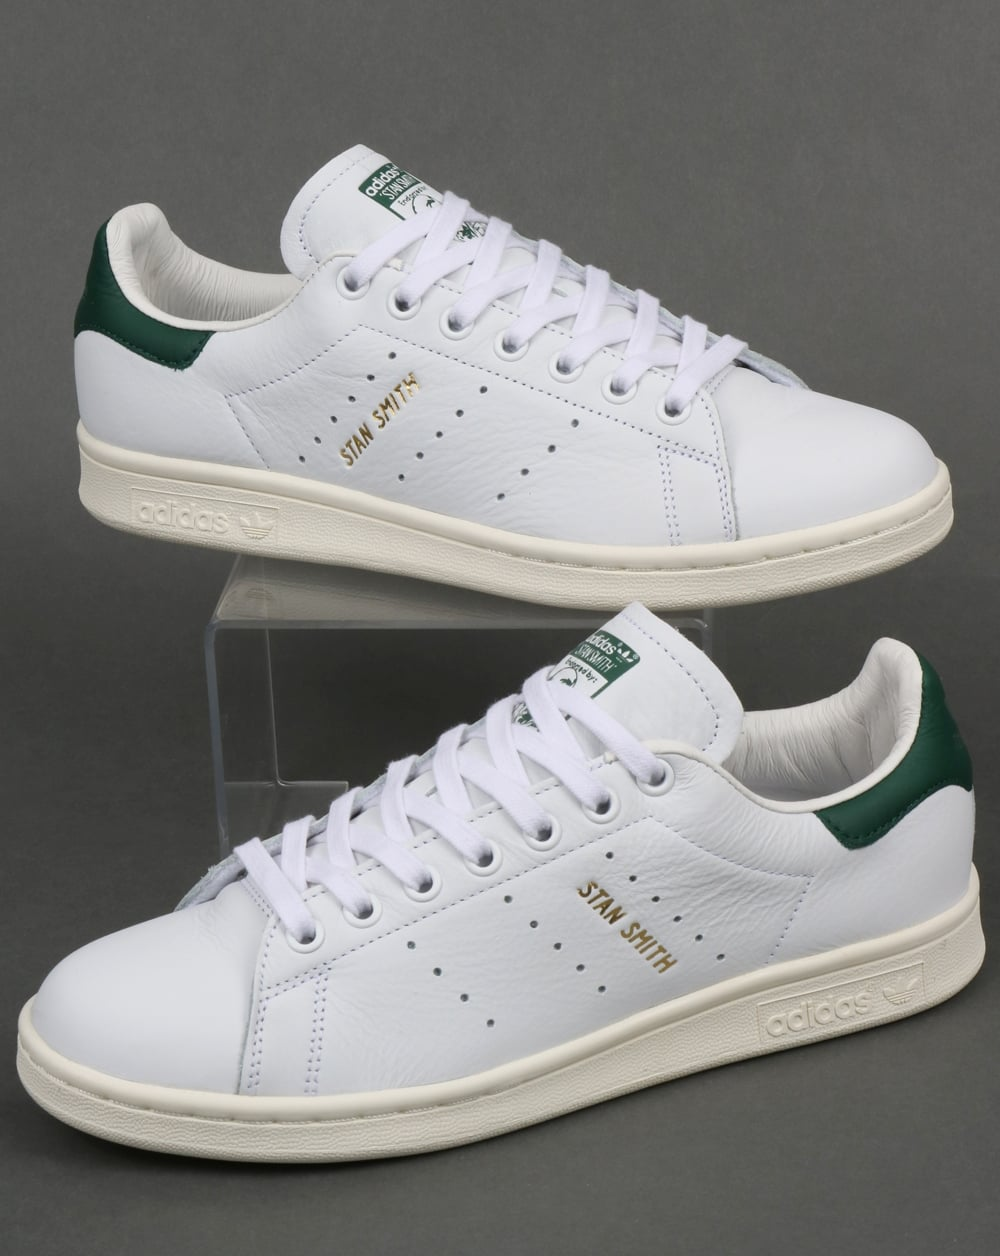 detailed look 4ba17 782dc Adidas Stan Smith Trainers White/Collegiate Green